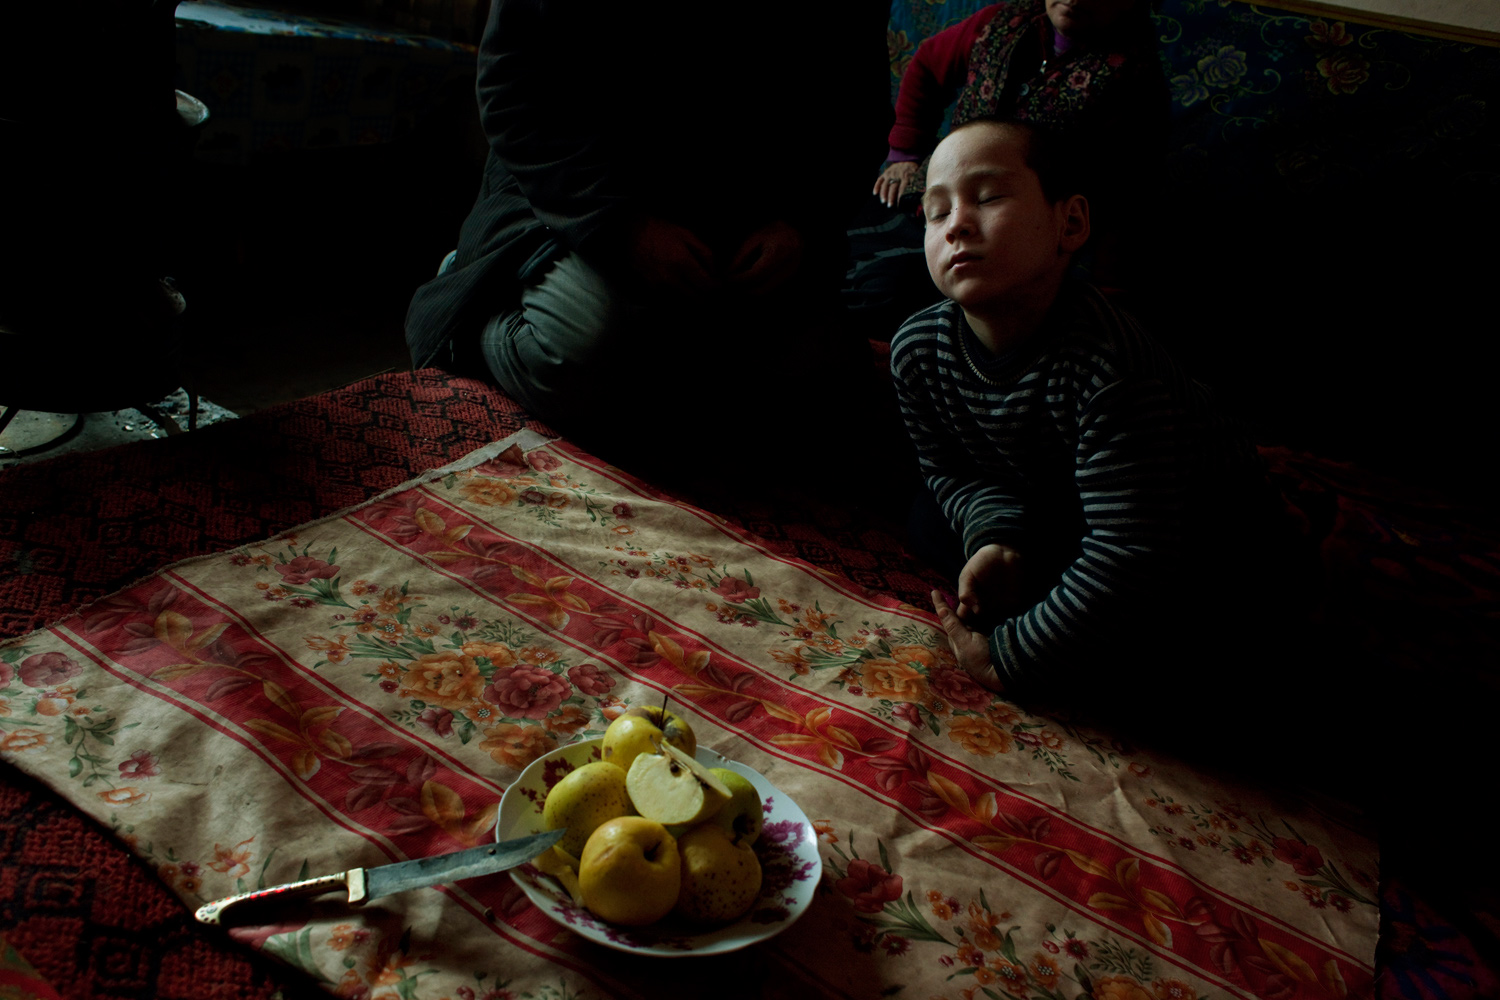 February 13, 2011. An Uyghur citizen waits for lunch in a farmhouse.